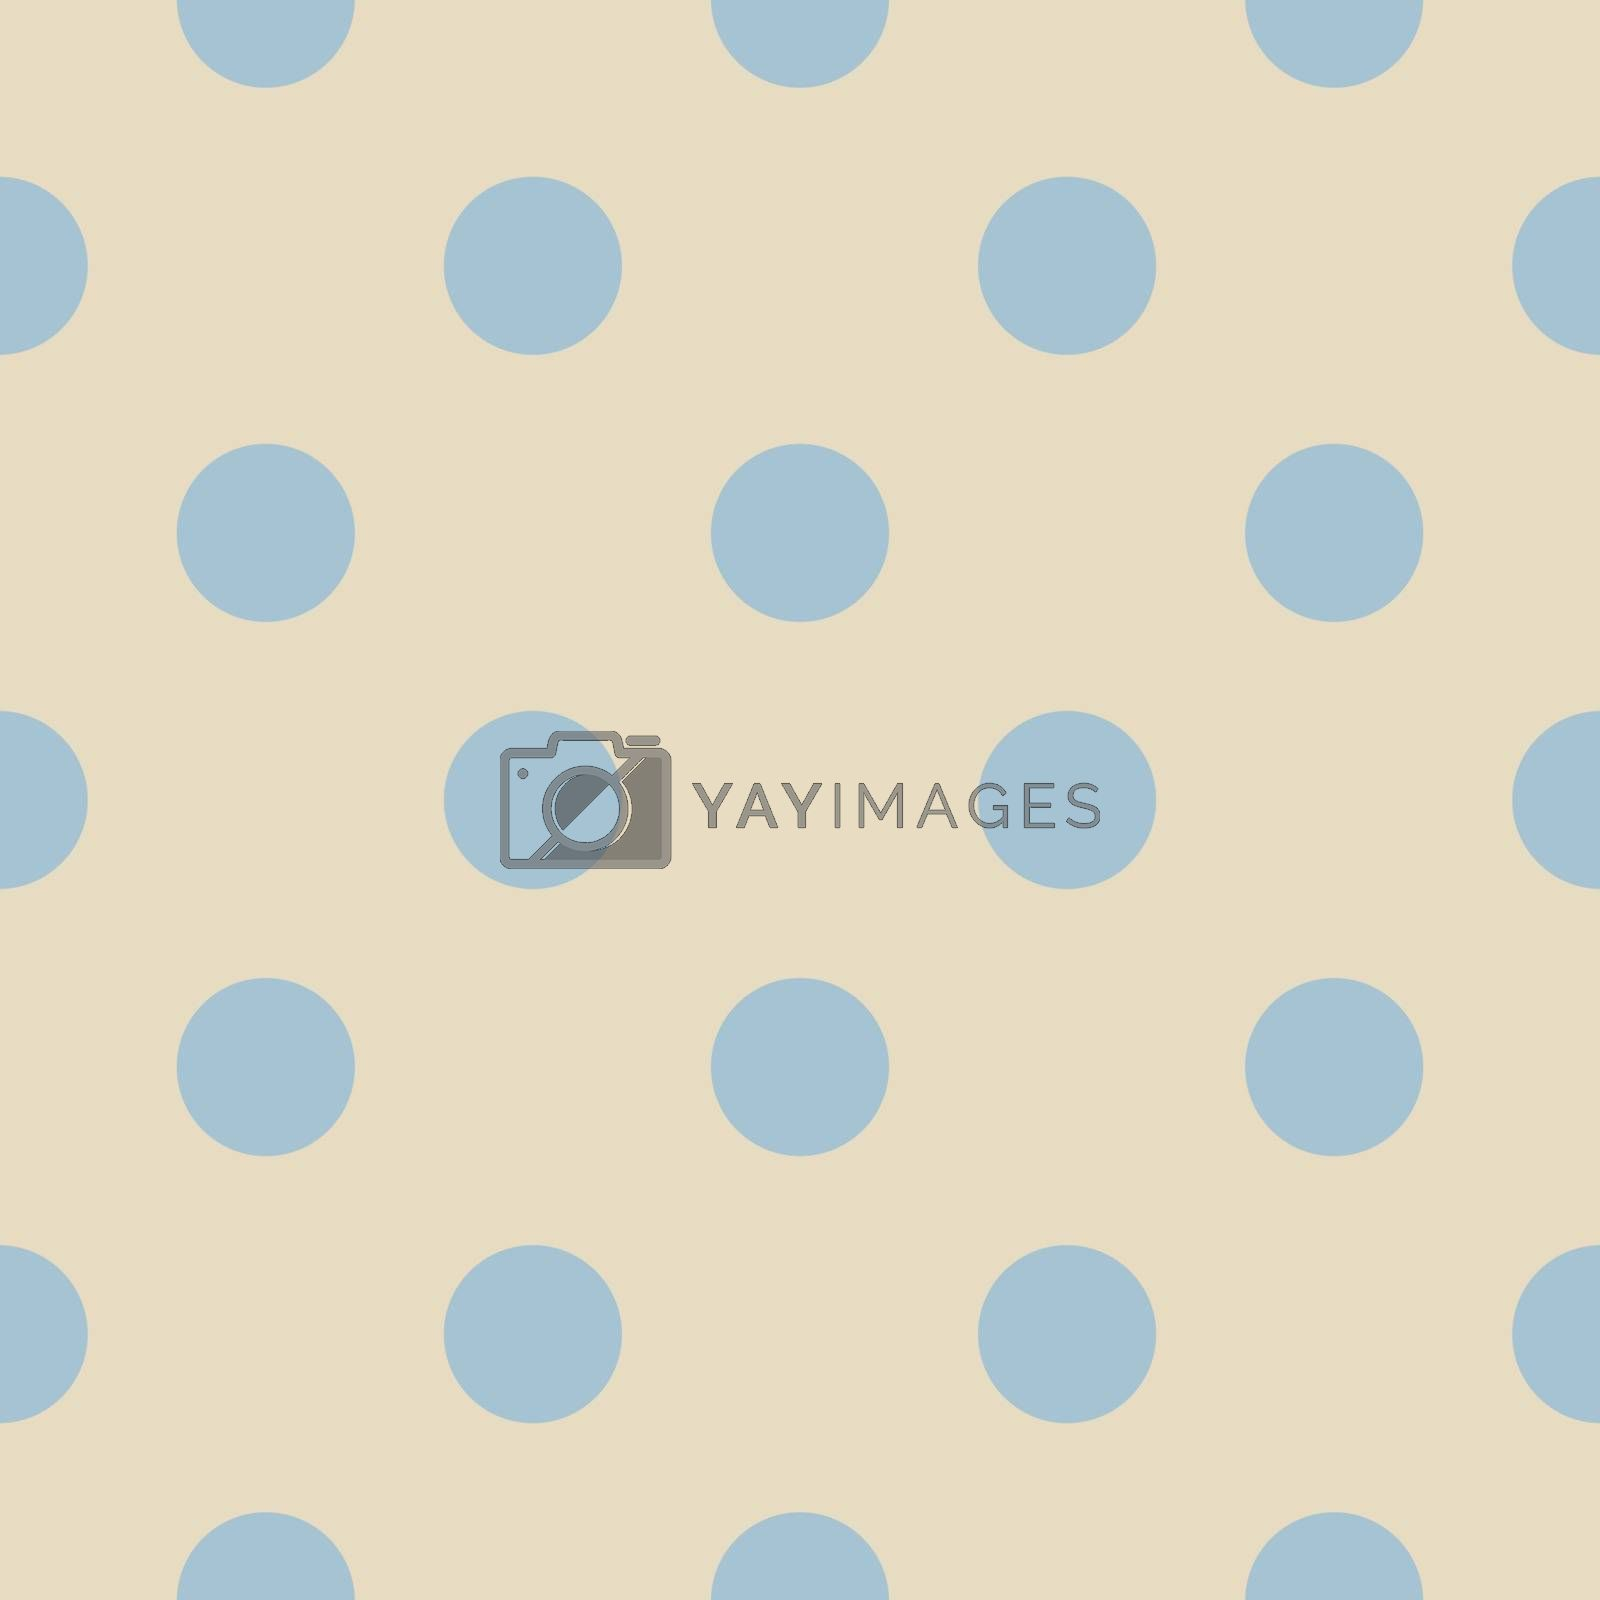 Retro Vector Seamless Pattern Or Texture With Big Pastel Baby Blue Polka Dots On Light Beige Neutral Background Royalty Free Stock Image Stock Photos Royalty Free Images Vectors Footage Yayimages